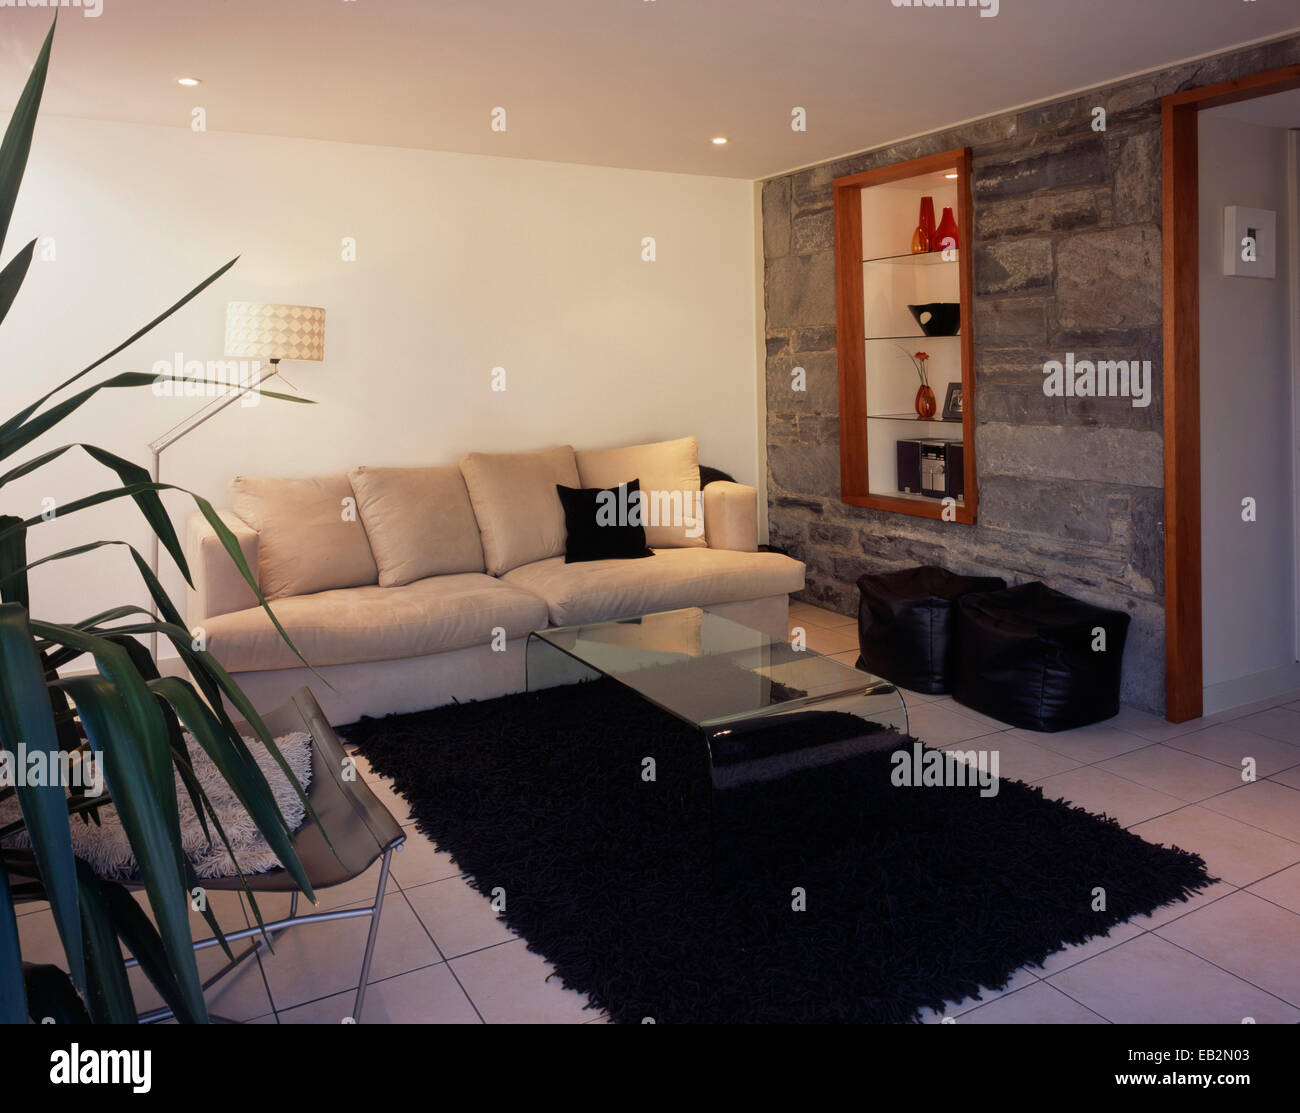 Coffee table on rug in front of sofa in living room in The Grainstore, Perthshire, Scotland Stock Photo